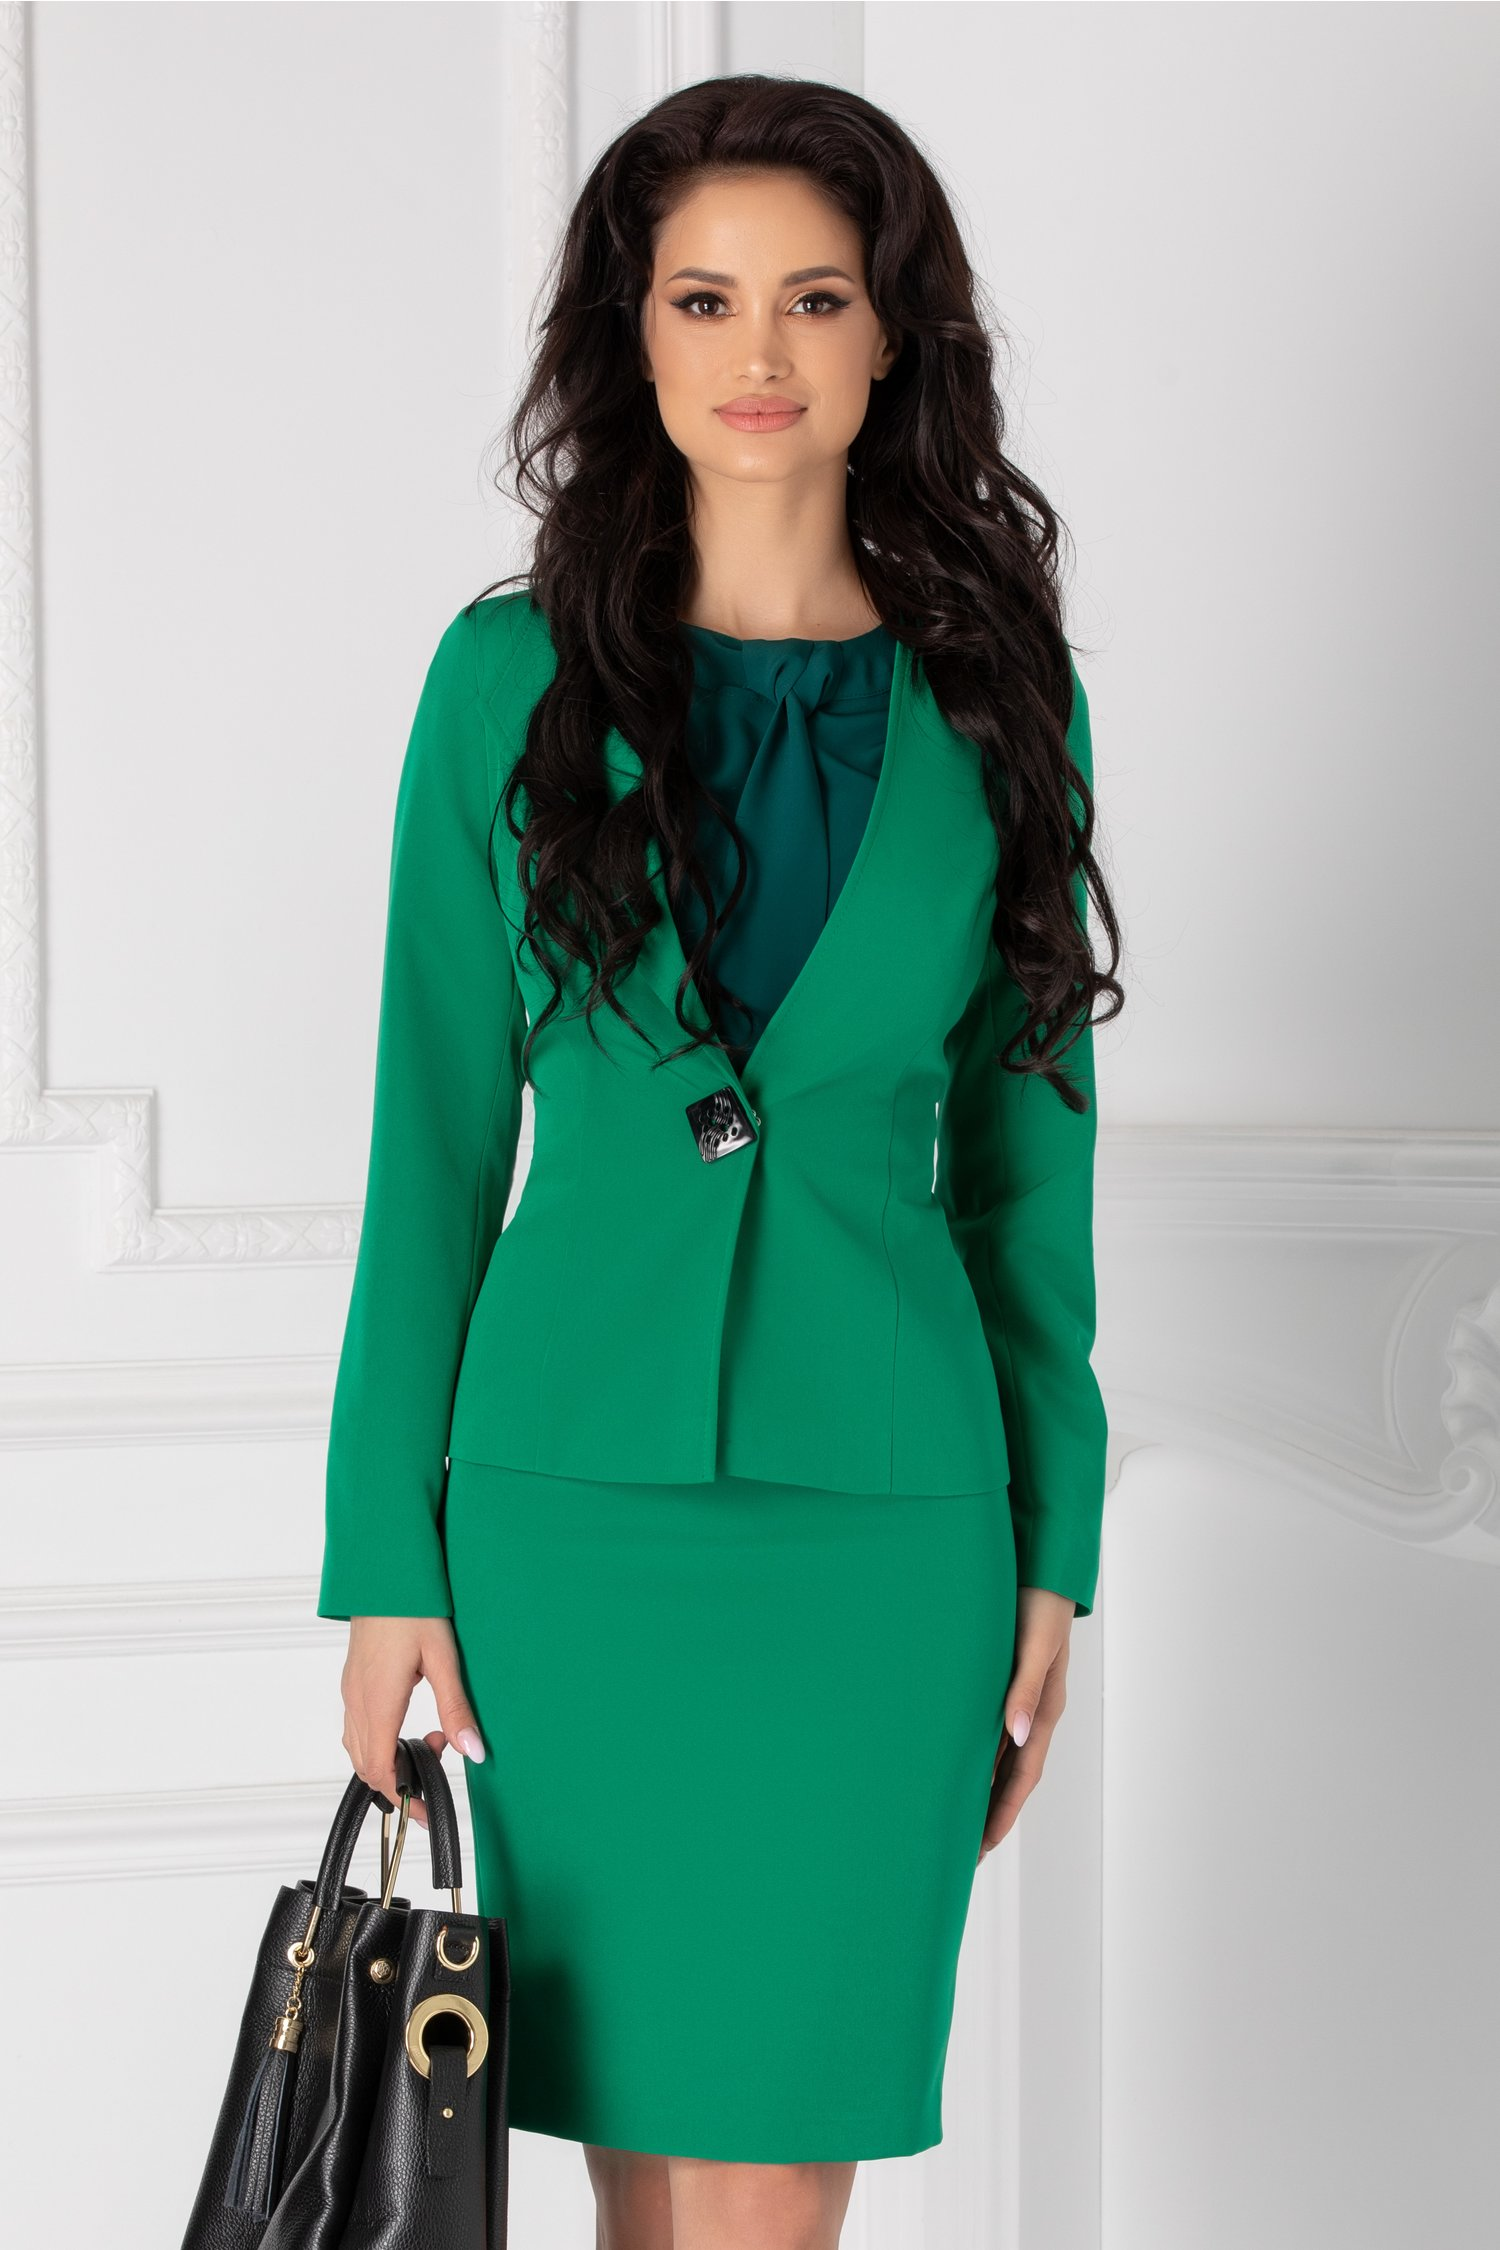 Compleu Leonard Collection verde cu sacou si fusta